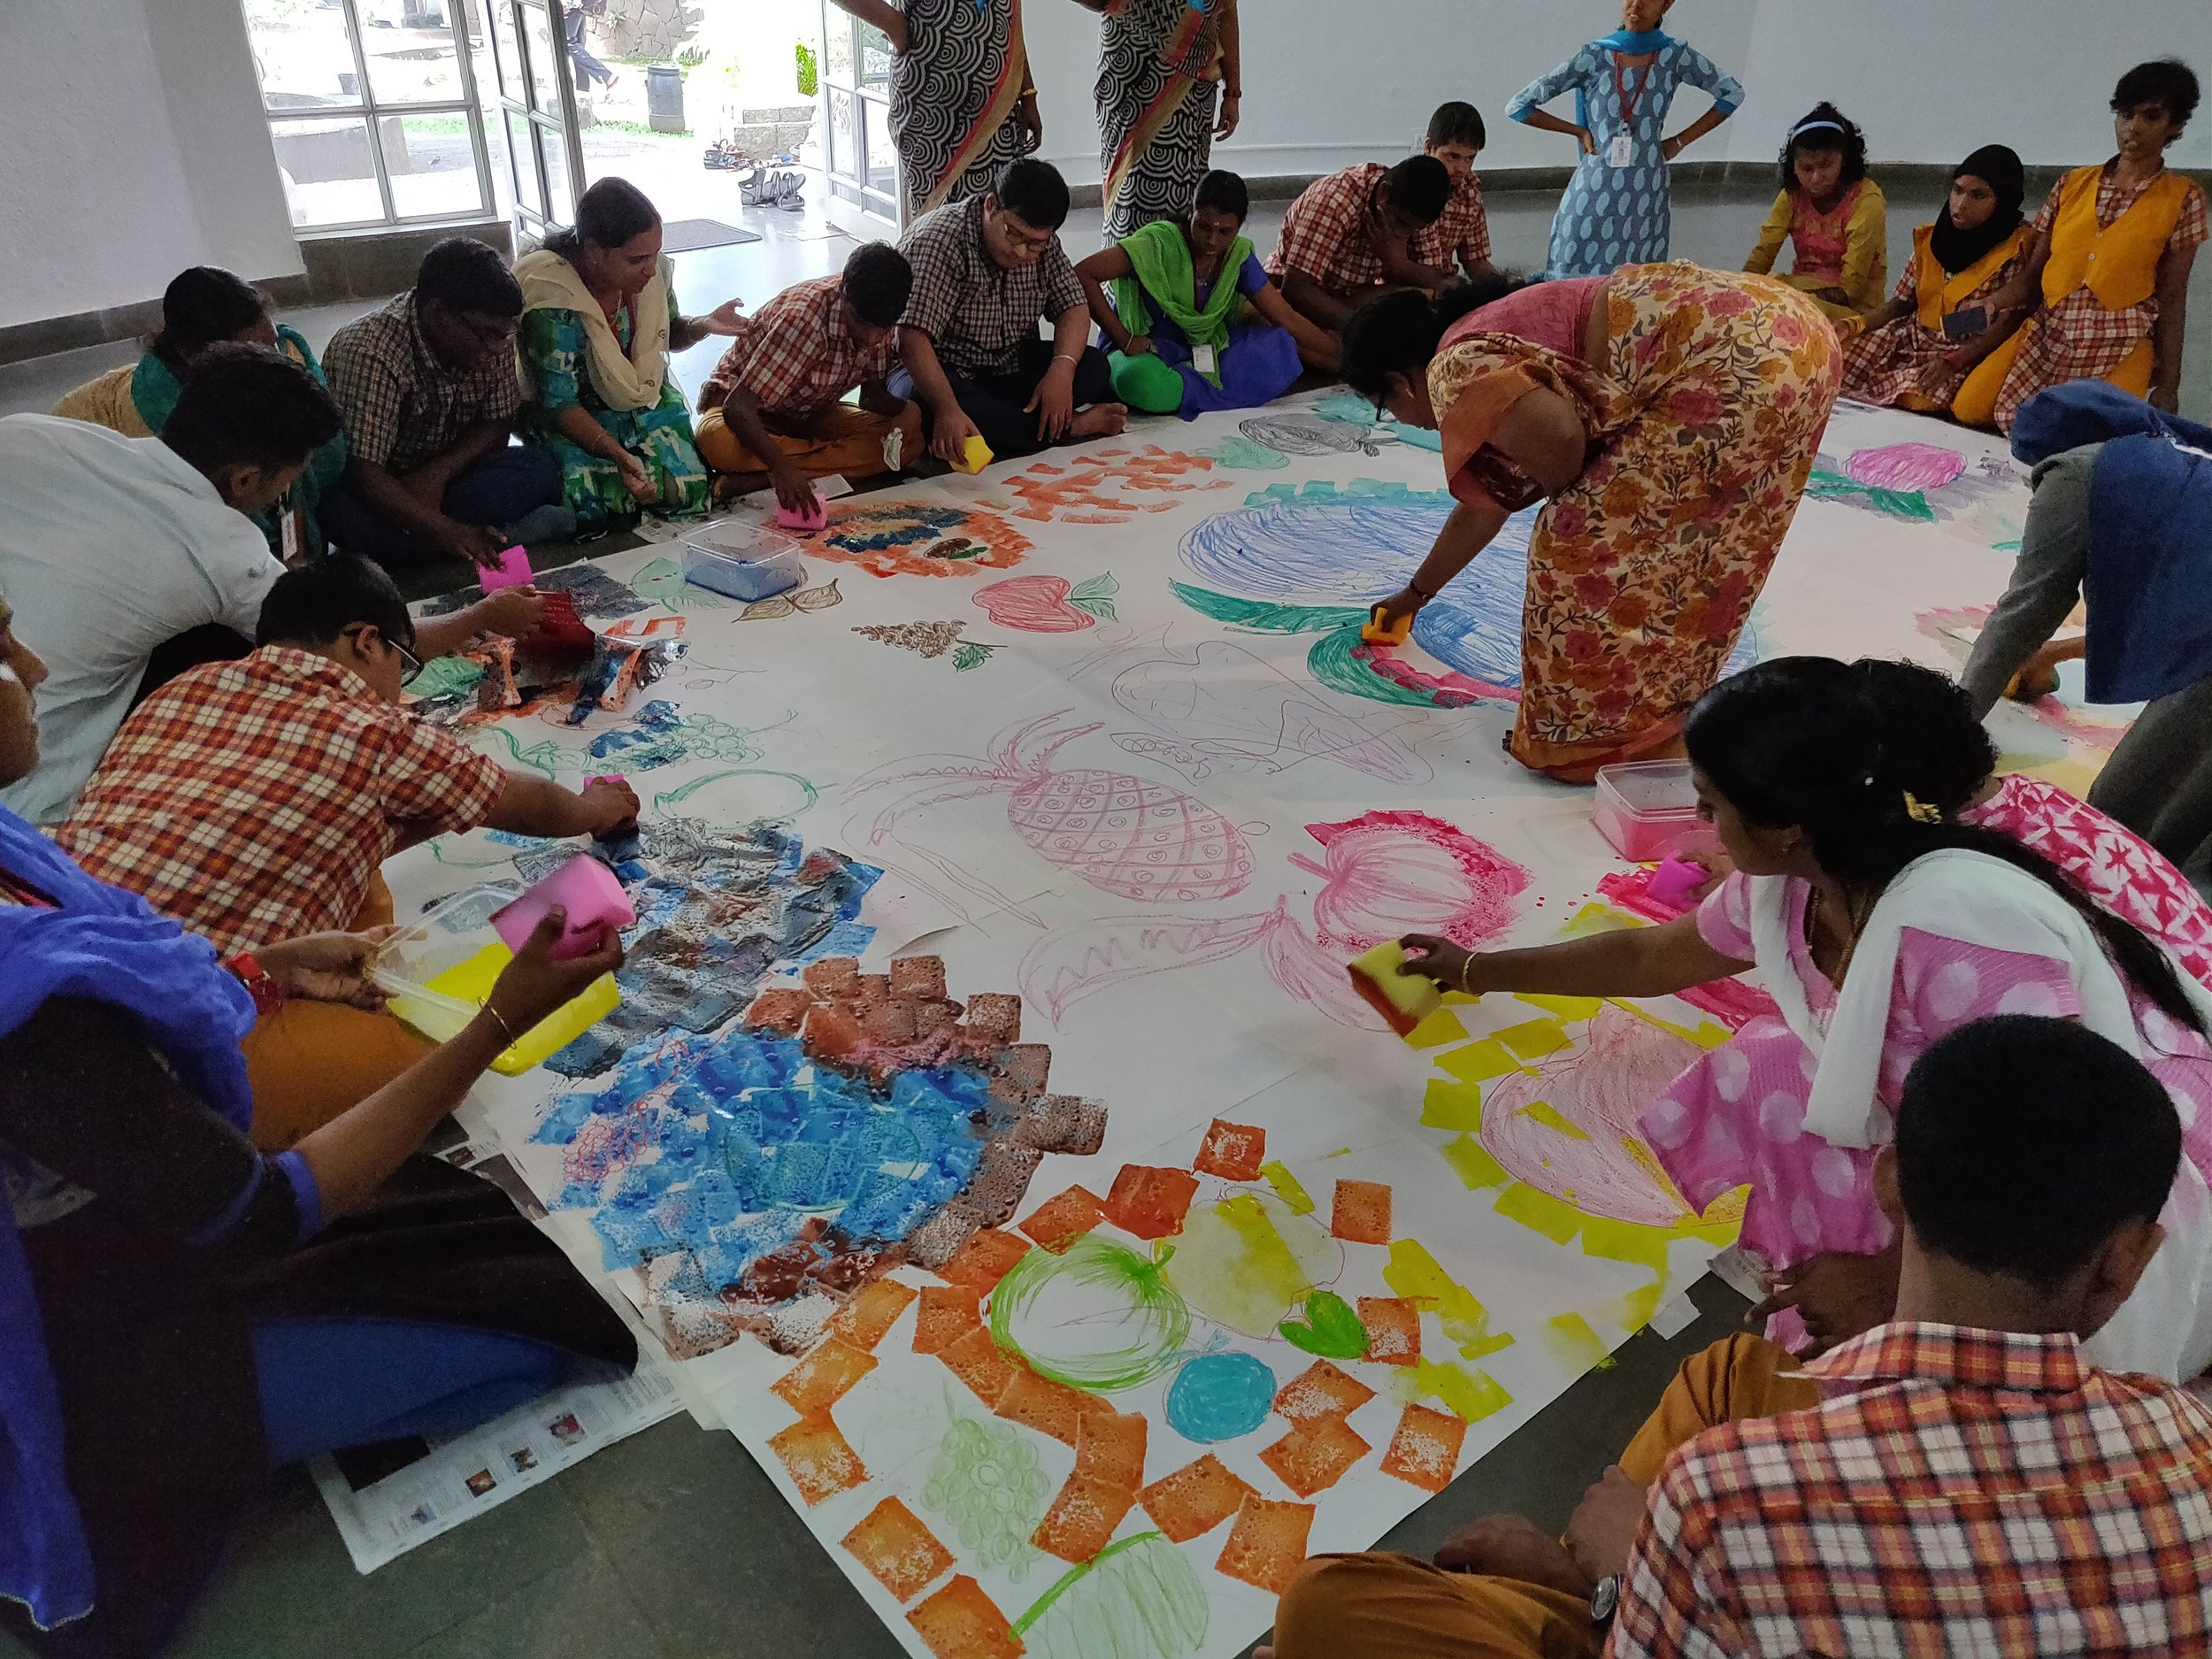 A sponge painting session for students, teachers and teacher trainees at the Visual Arts Centre.